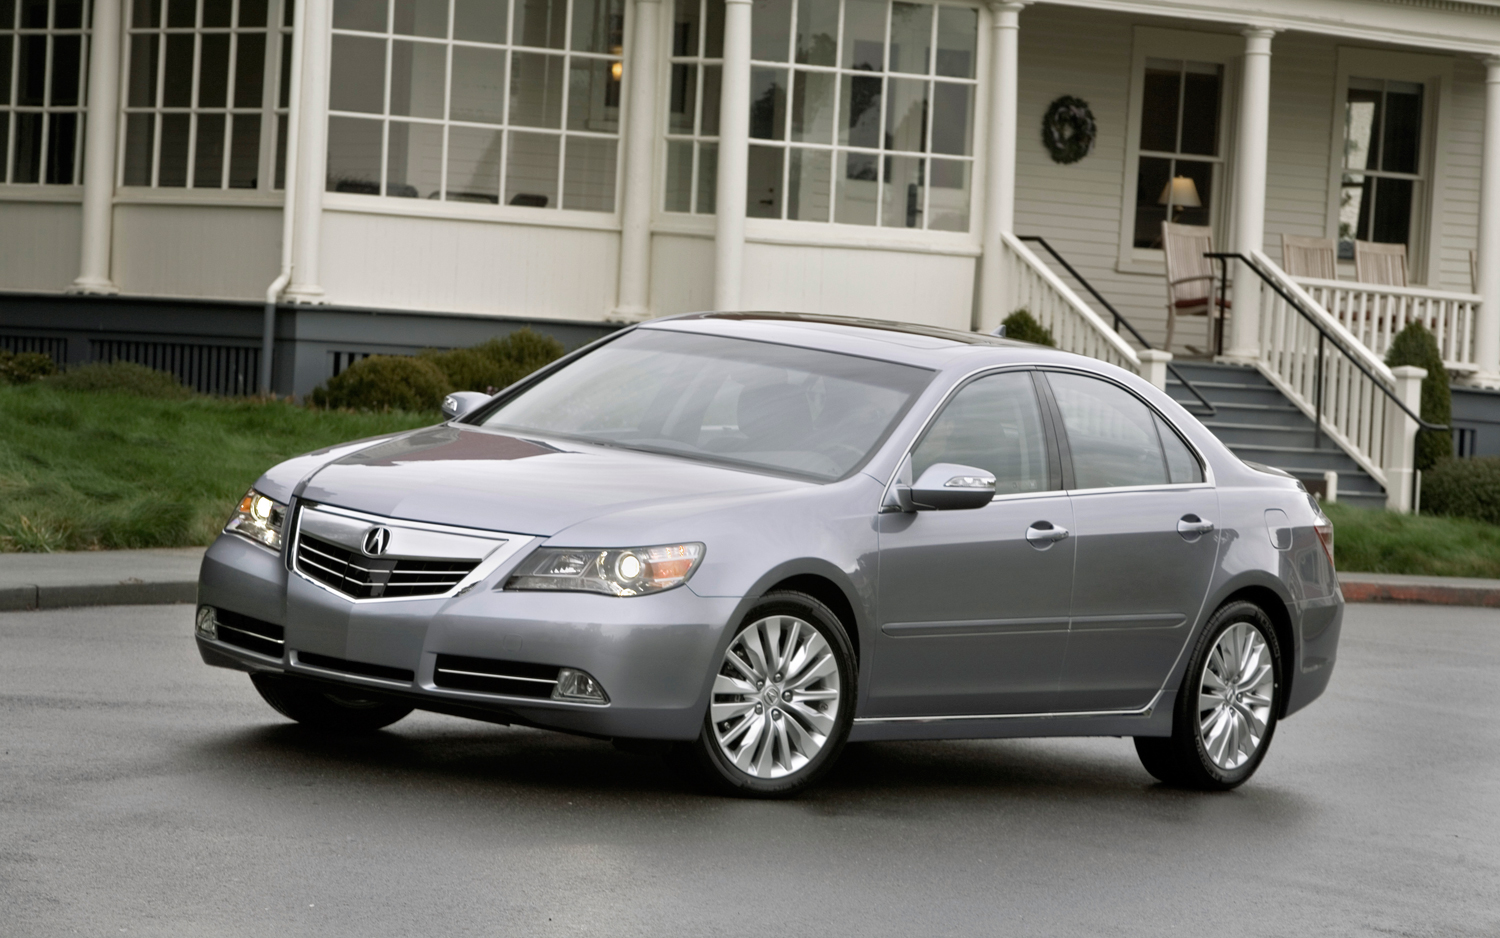 Acura RL 2014 photo - 3